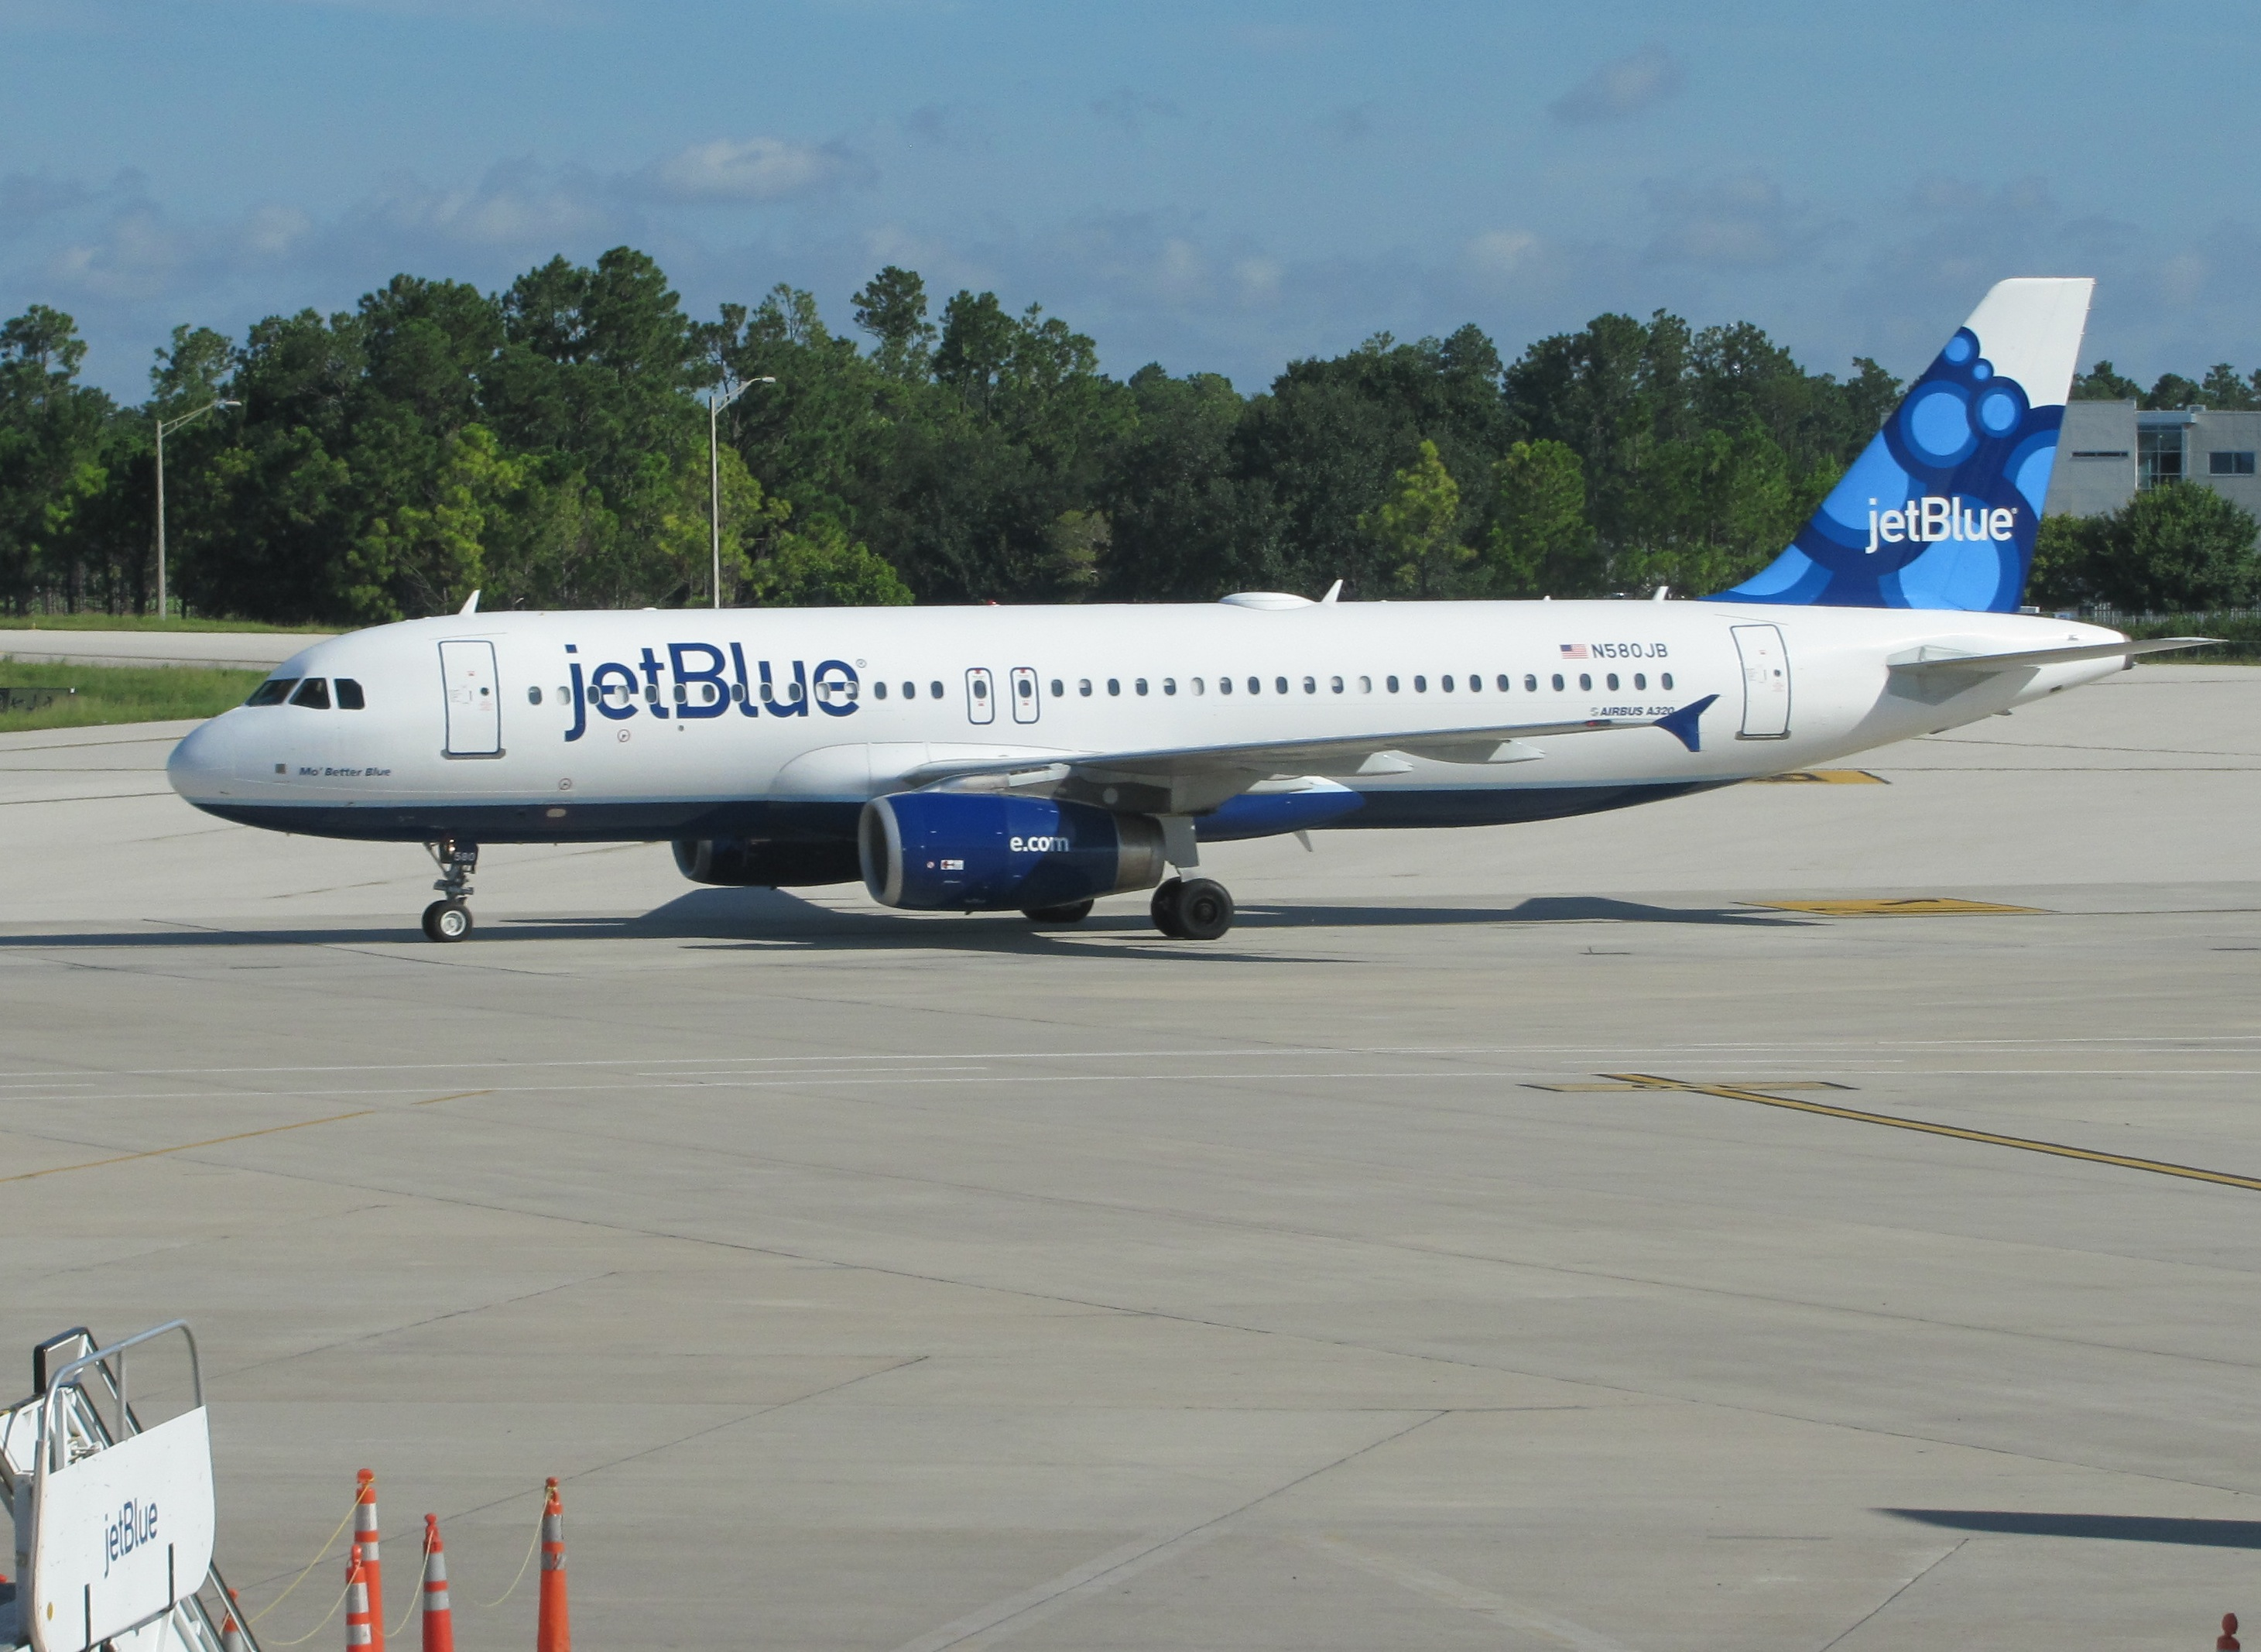 JetBlue failed to take any action against the pilots